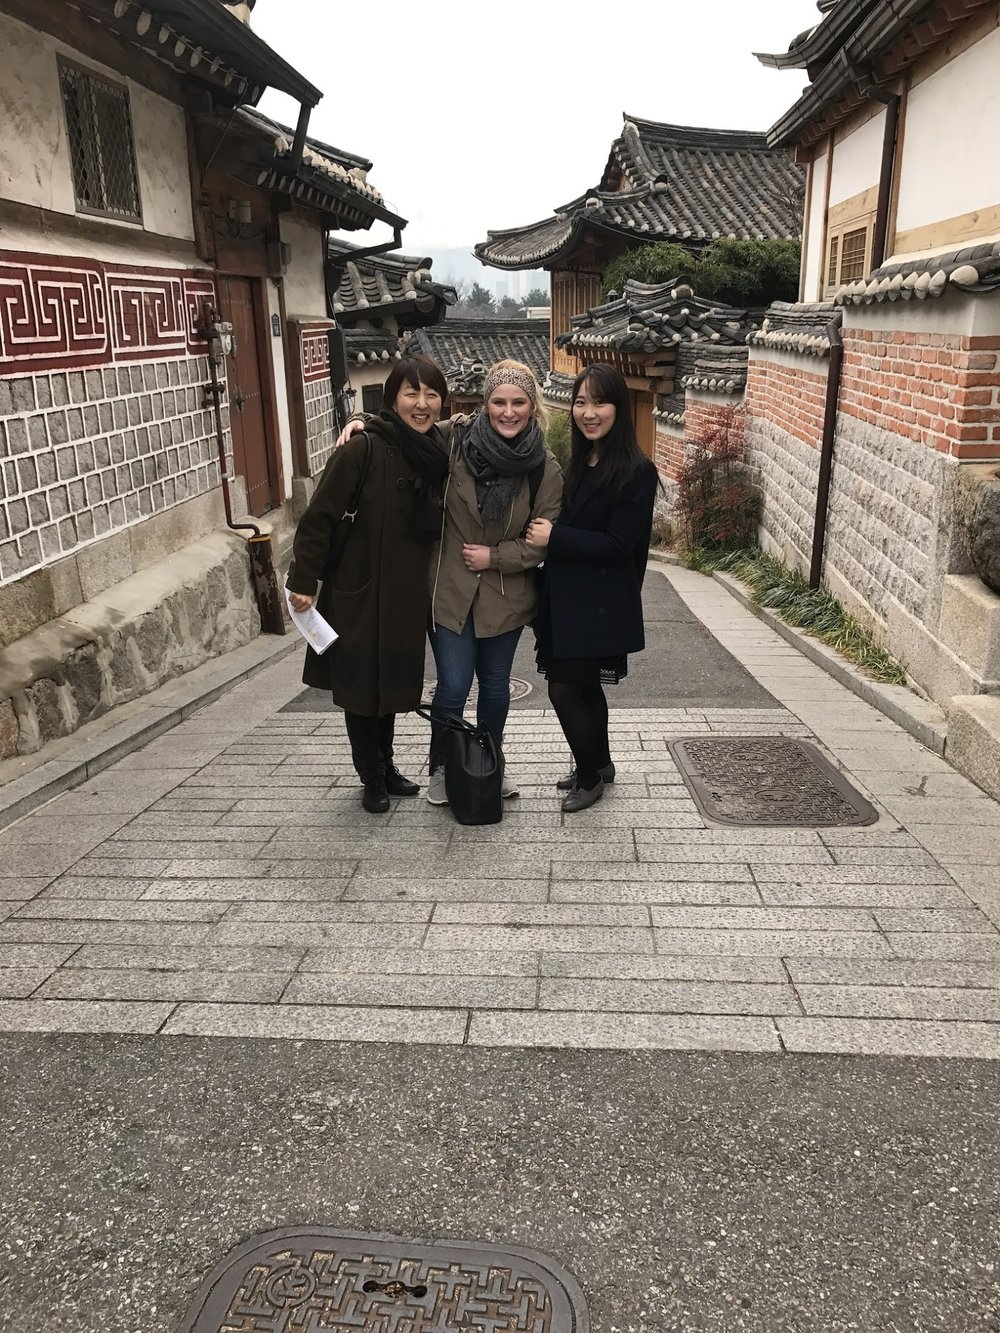 Getting a tour of the oldest part of Seoul. This trip has a lot of great stories, including but not limited to being the sickest I have been in my life but realizing I couldn't waste an opportunity to see Seoul.